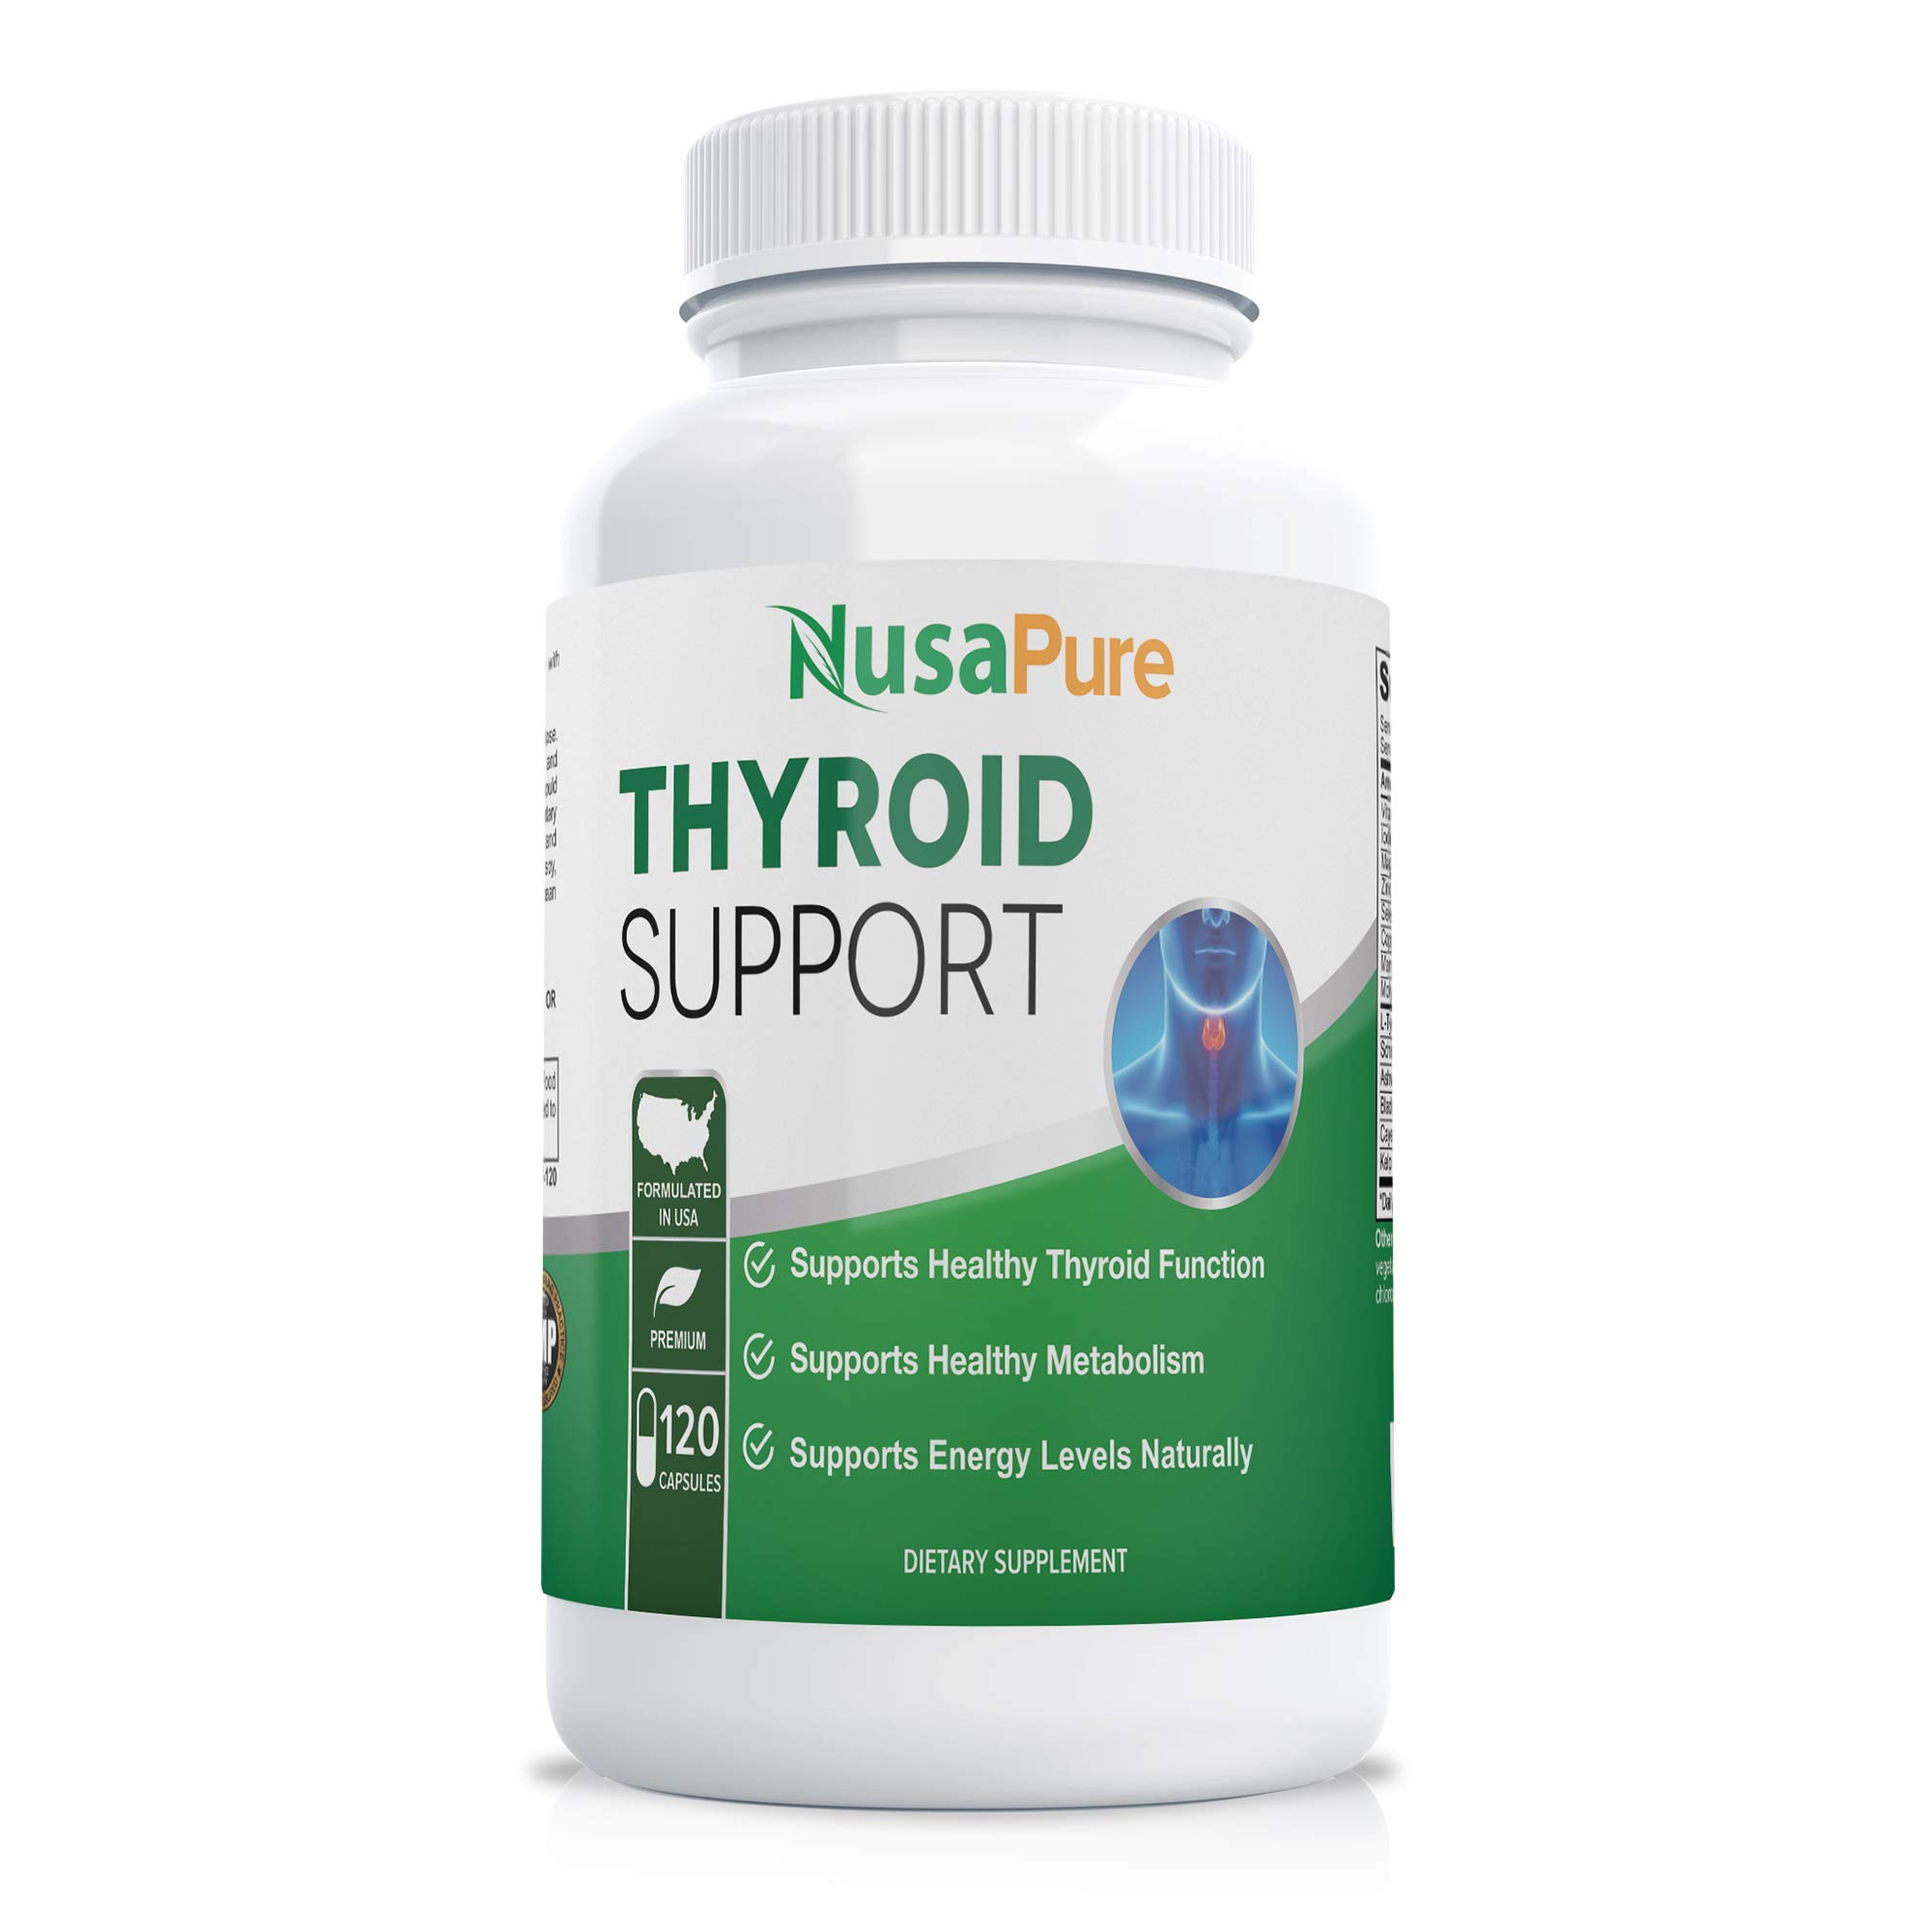 Premium Thyroid Support Supplement (Non-GMO) 120 caps for with Ashwaganda, Iodine, Zinc, kelp, Vitamin B12, L-Tyrosine, Selenium, Copper for Thyroid Energy*